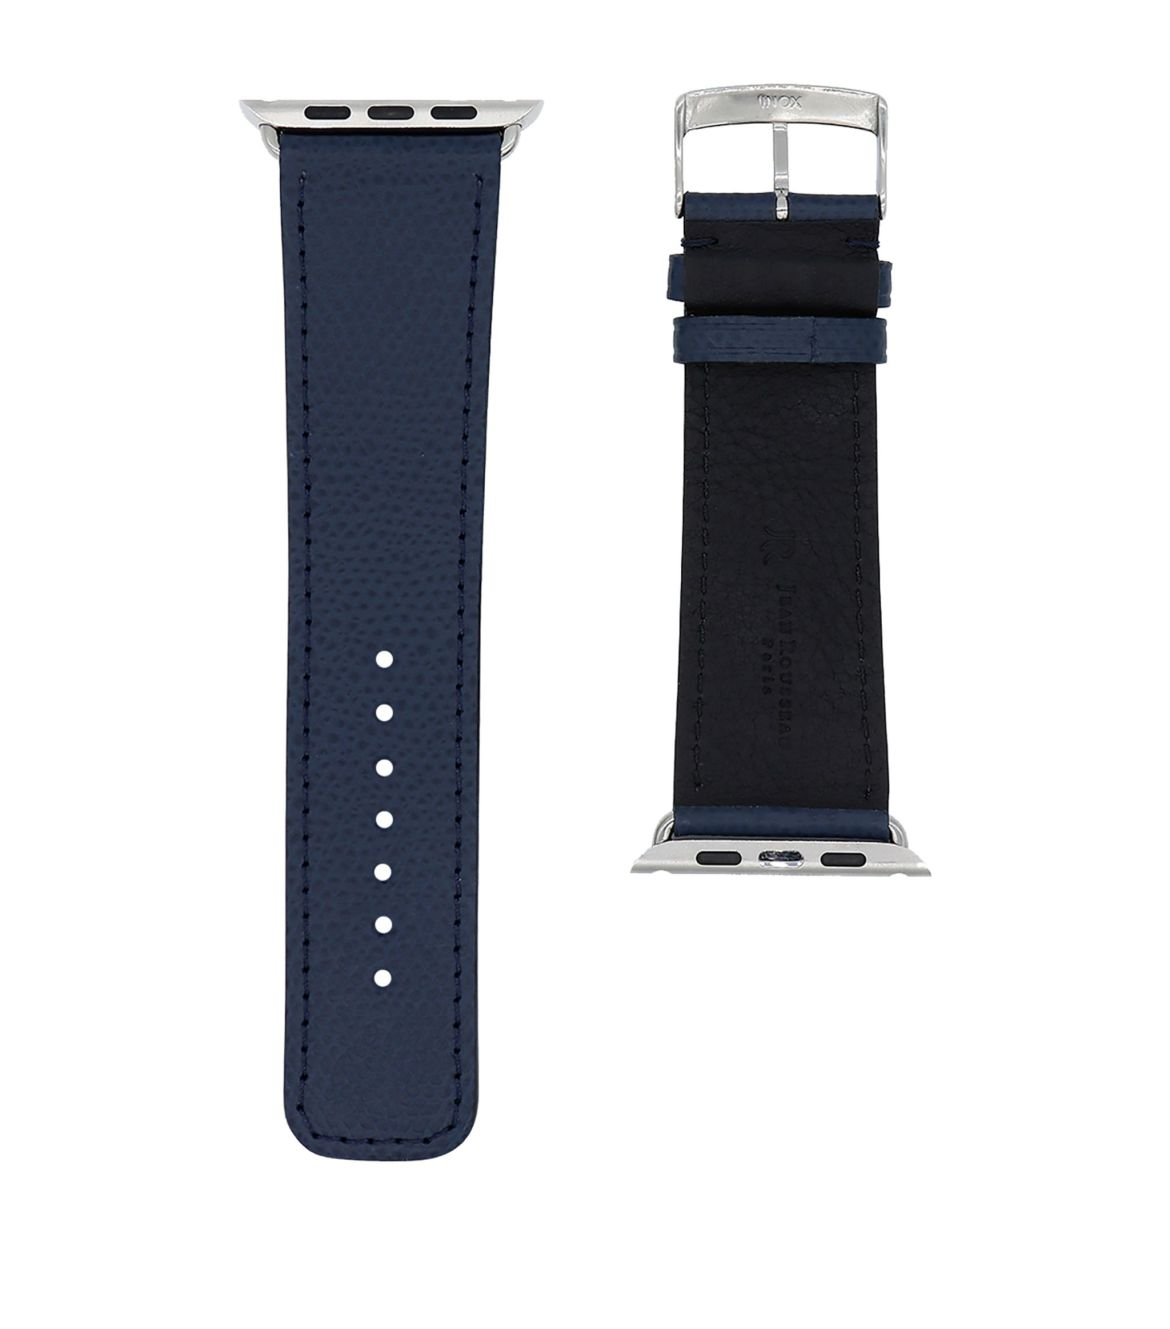 Image result for 42mm apple watch band